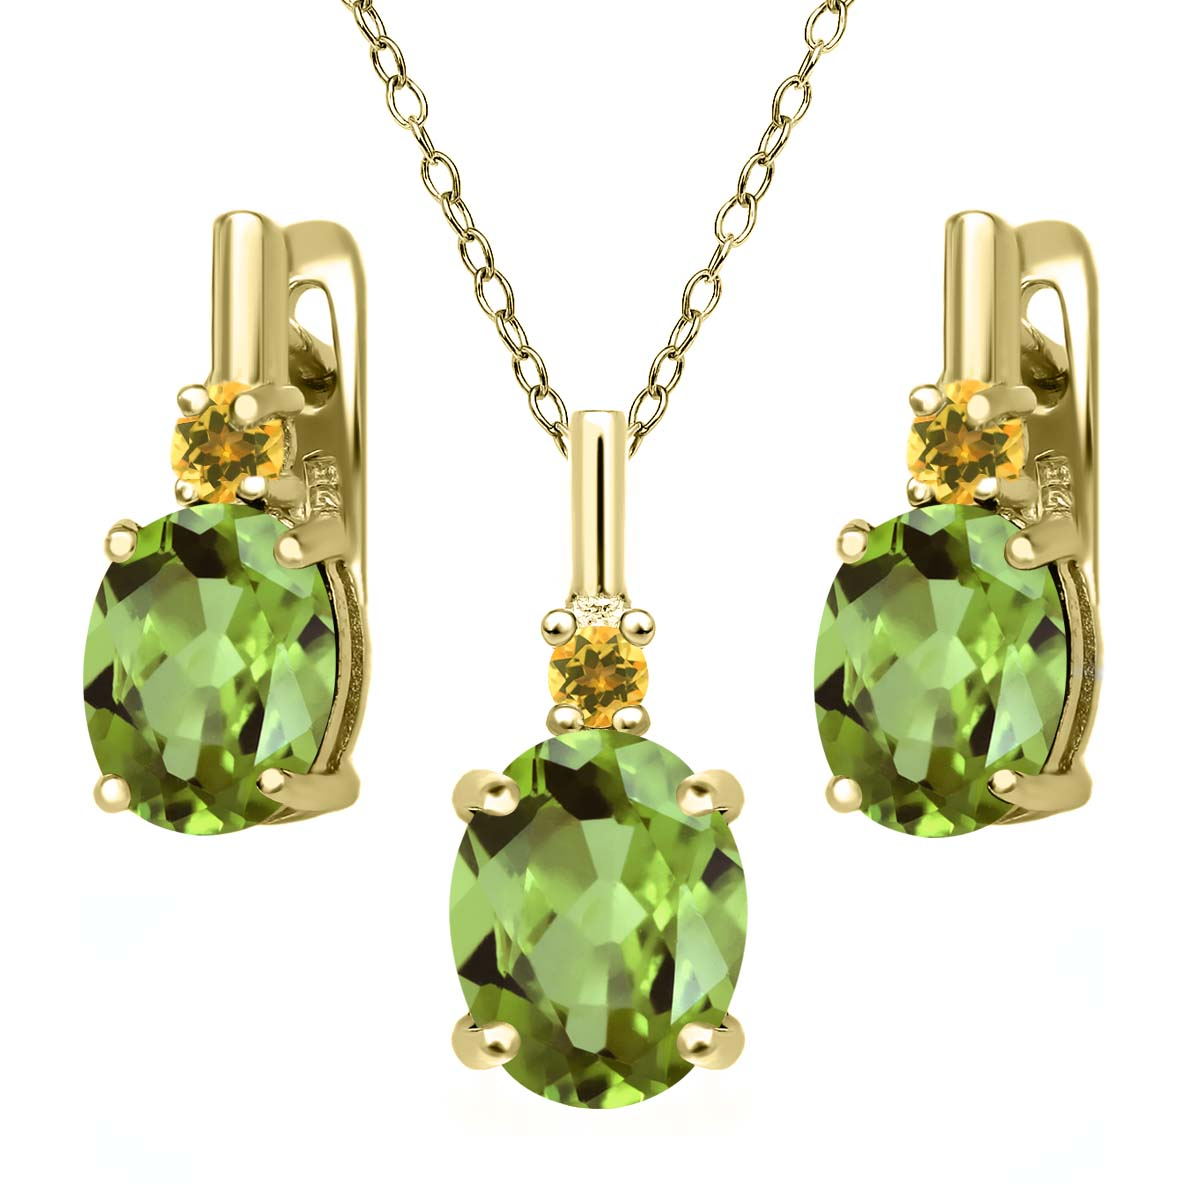 Peridot and Simulated Citrine 18K Yellow Gold Plated Silver Pendant Earrings Set by